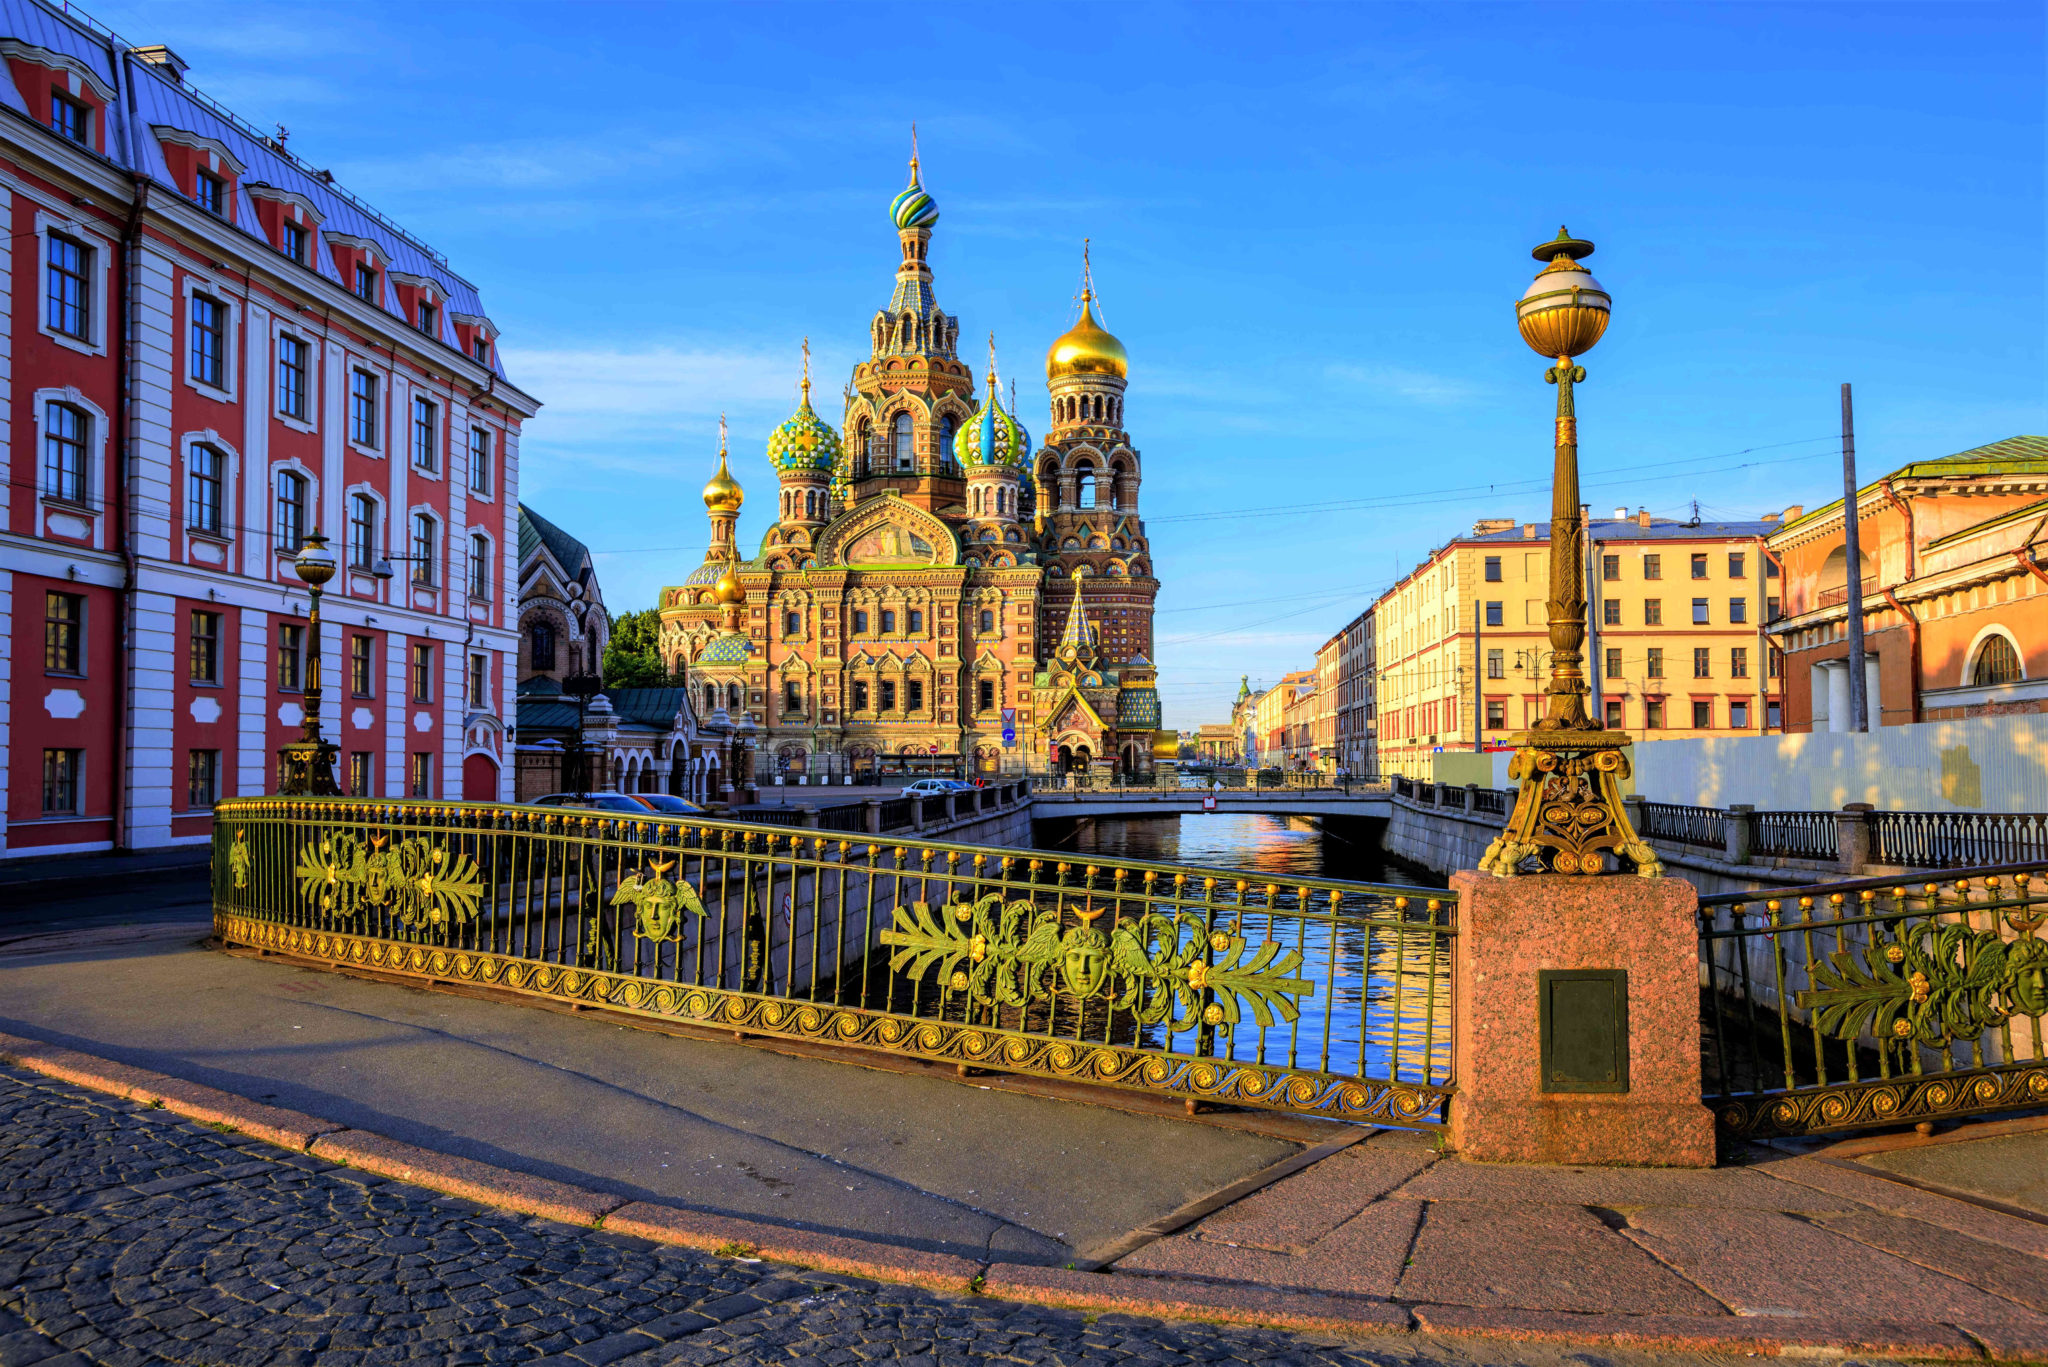 The Church of the Savior on Spilled Blood on Griboyedov canal in the early morning light